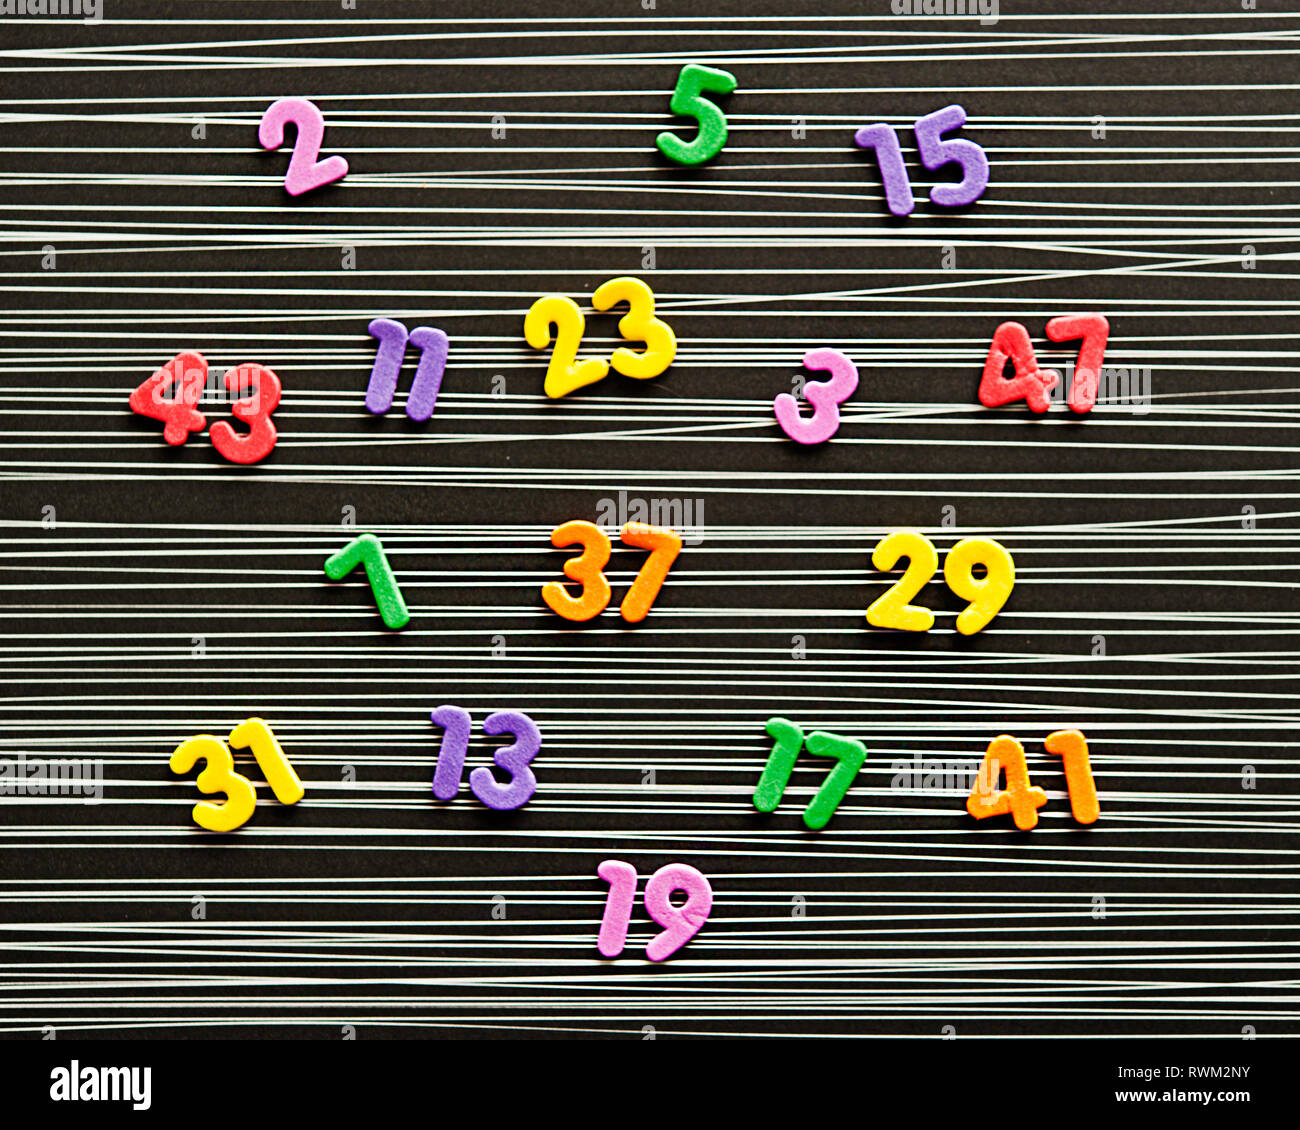 all the prime numbers in the first 50 digits - Stock Image